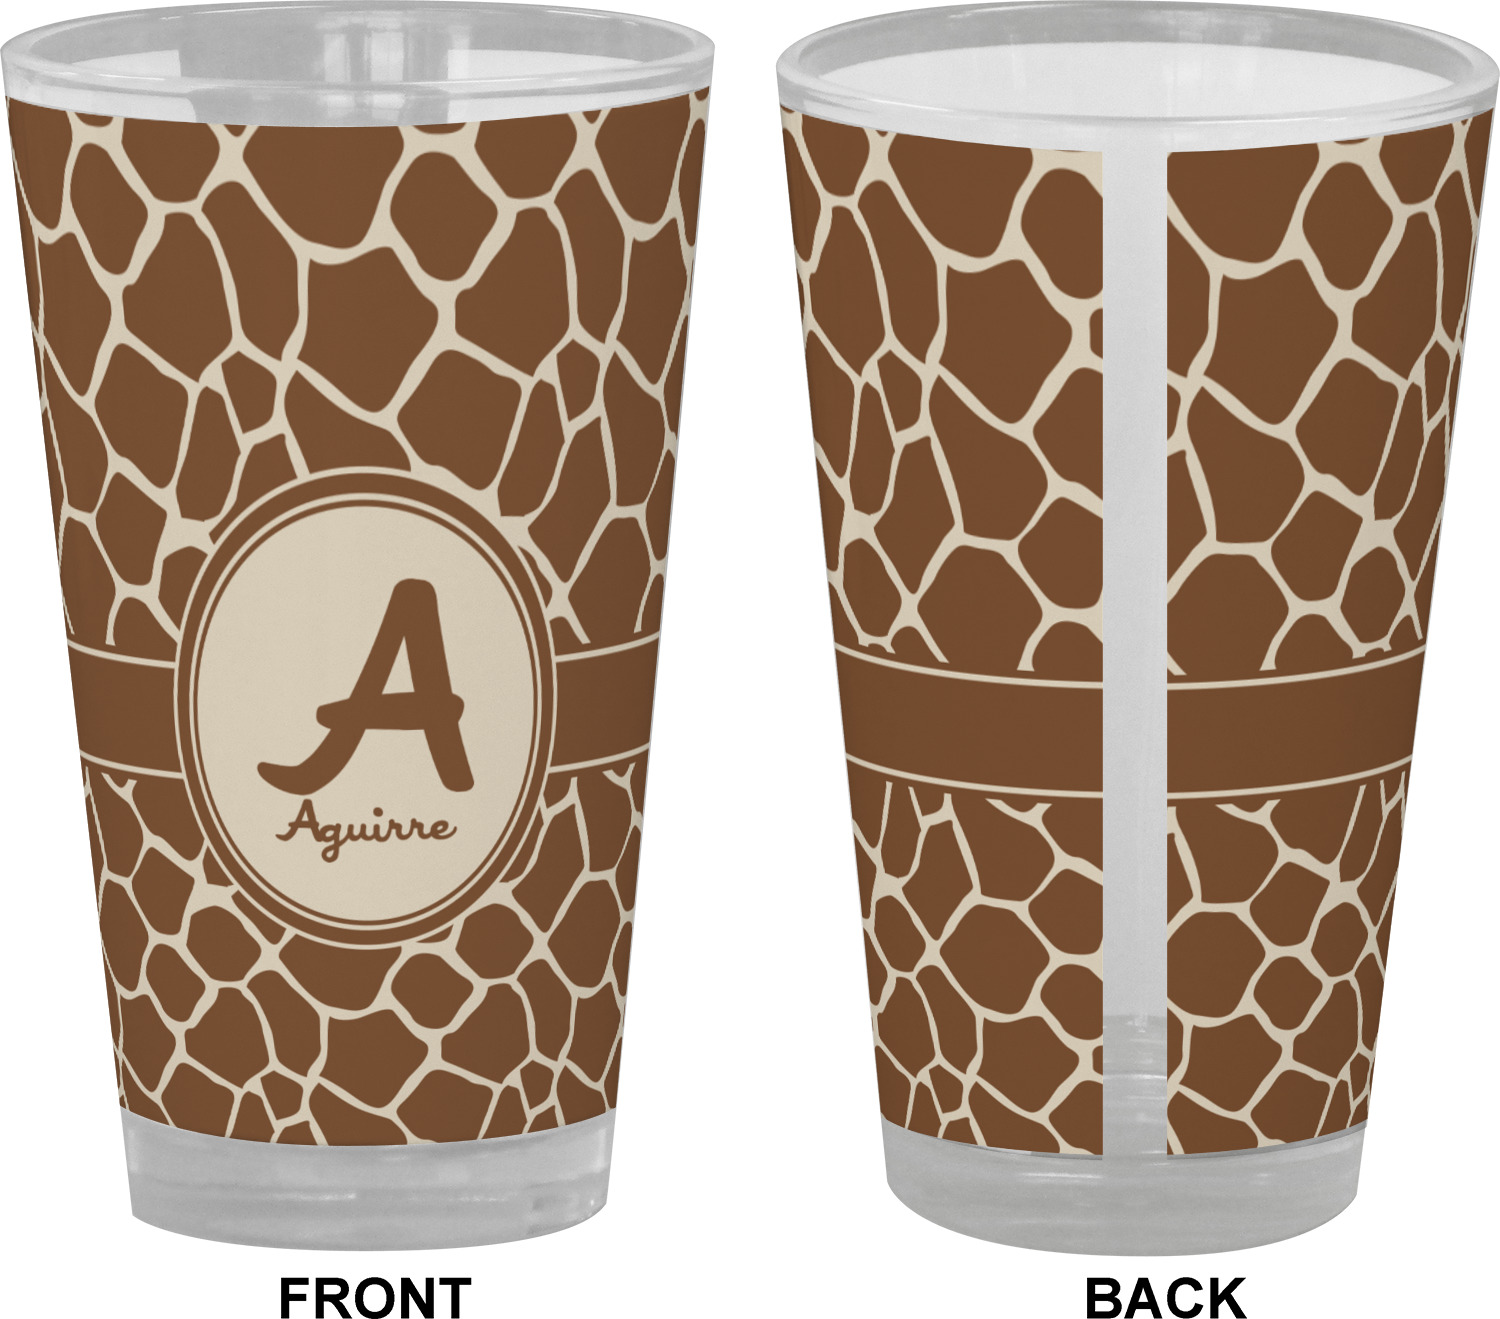 Girffe Themes Drinking Glasses